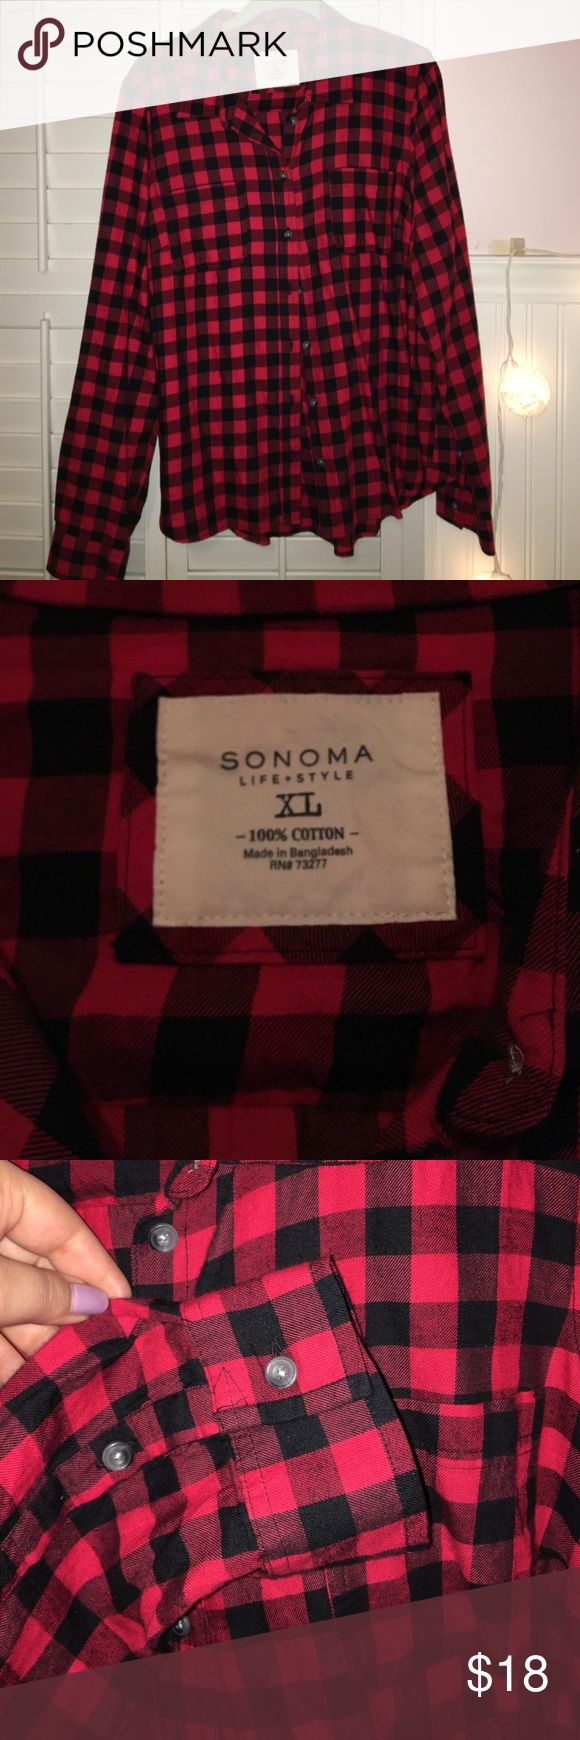 Black and Red Button Up Plaid Shirt Black and red plaid button up shirt. Two pockets on the front of the shirt. Purchased at Kohls. Only worn a few times so in excellent condition. Sonoma Tops Button Down Shirts